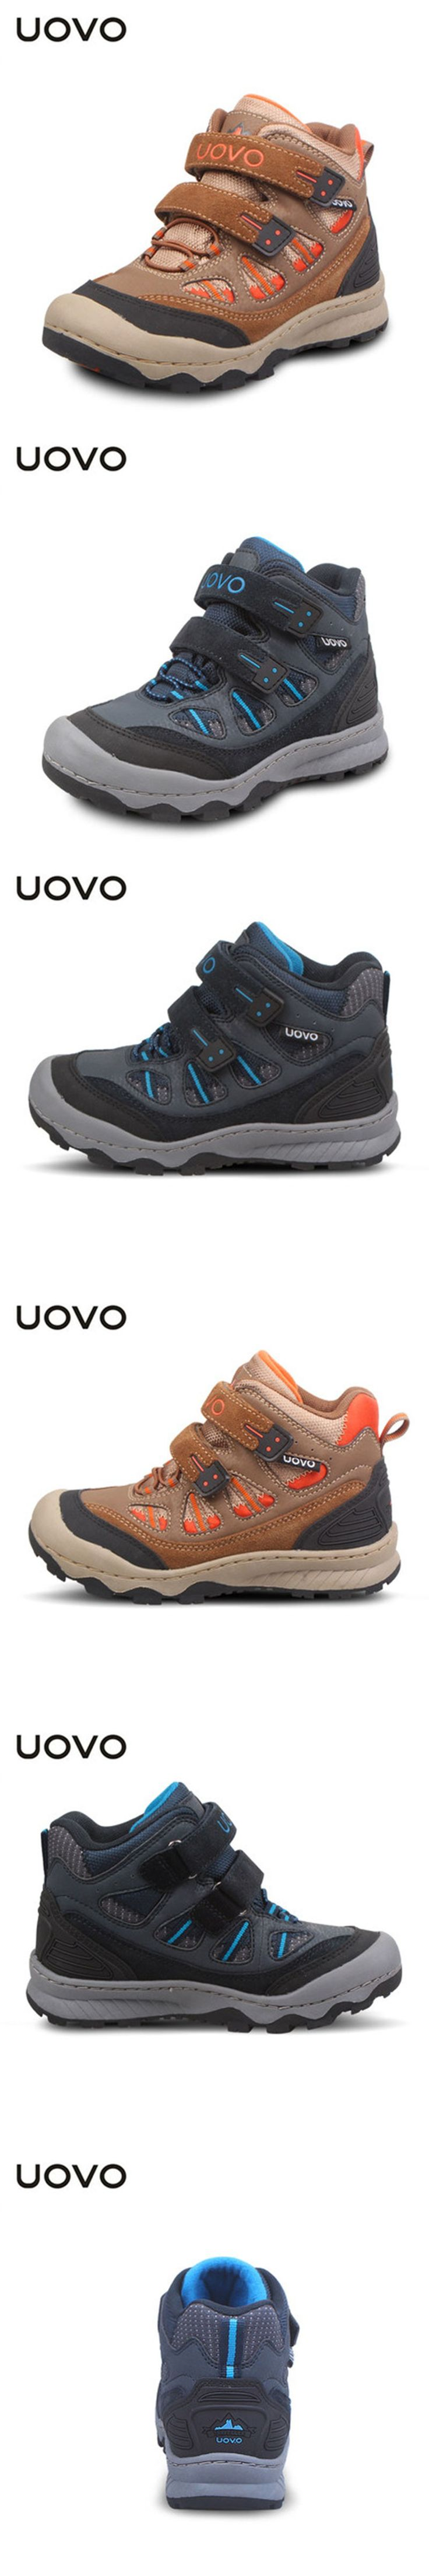 New Uovo Brand Boys Spring Winter Sneakers Kids Sport Outdoor Waterproof Wading Shoes Anti Skid Chaussure Enfant EU 31-36 Shoes $46